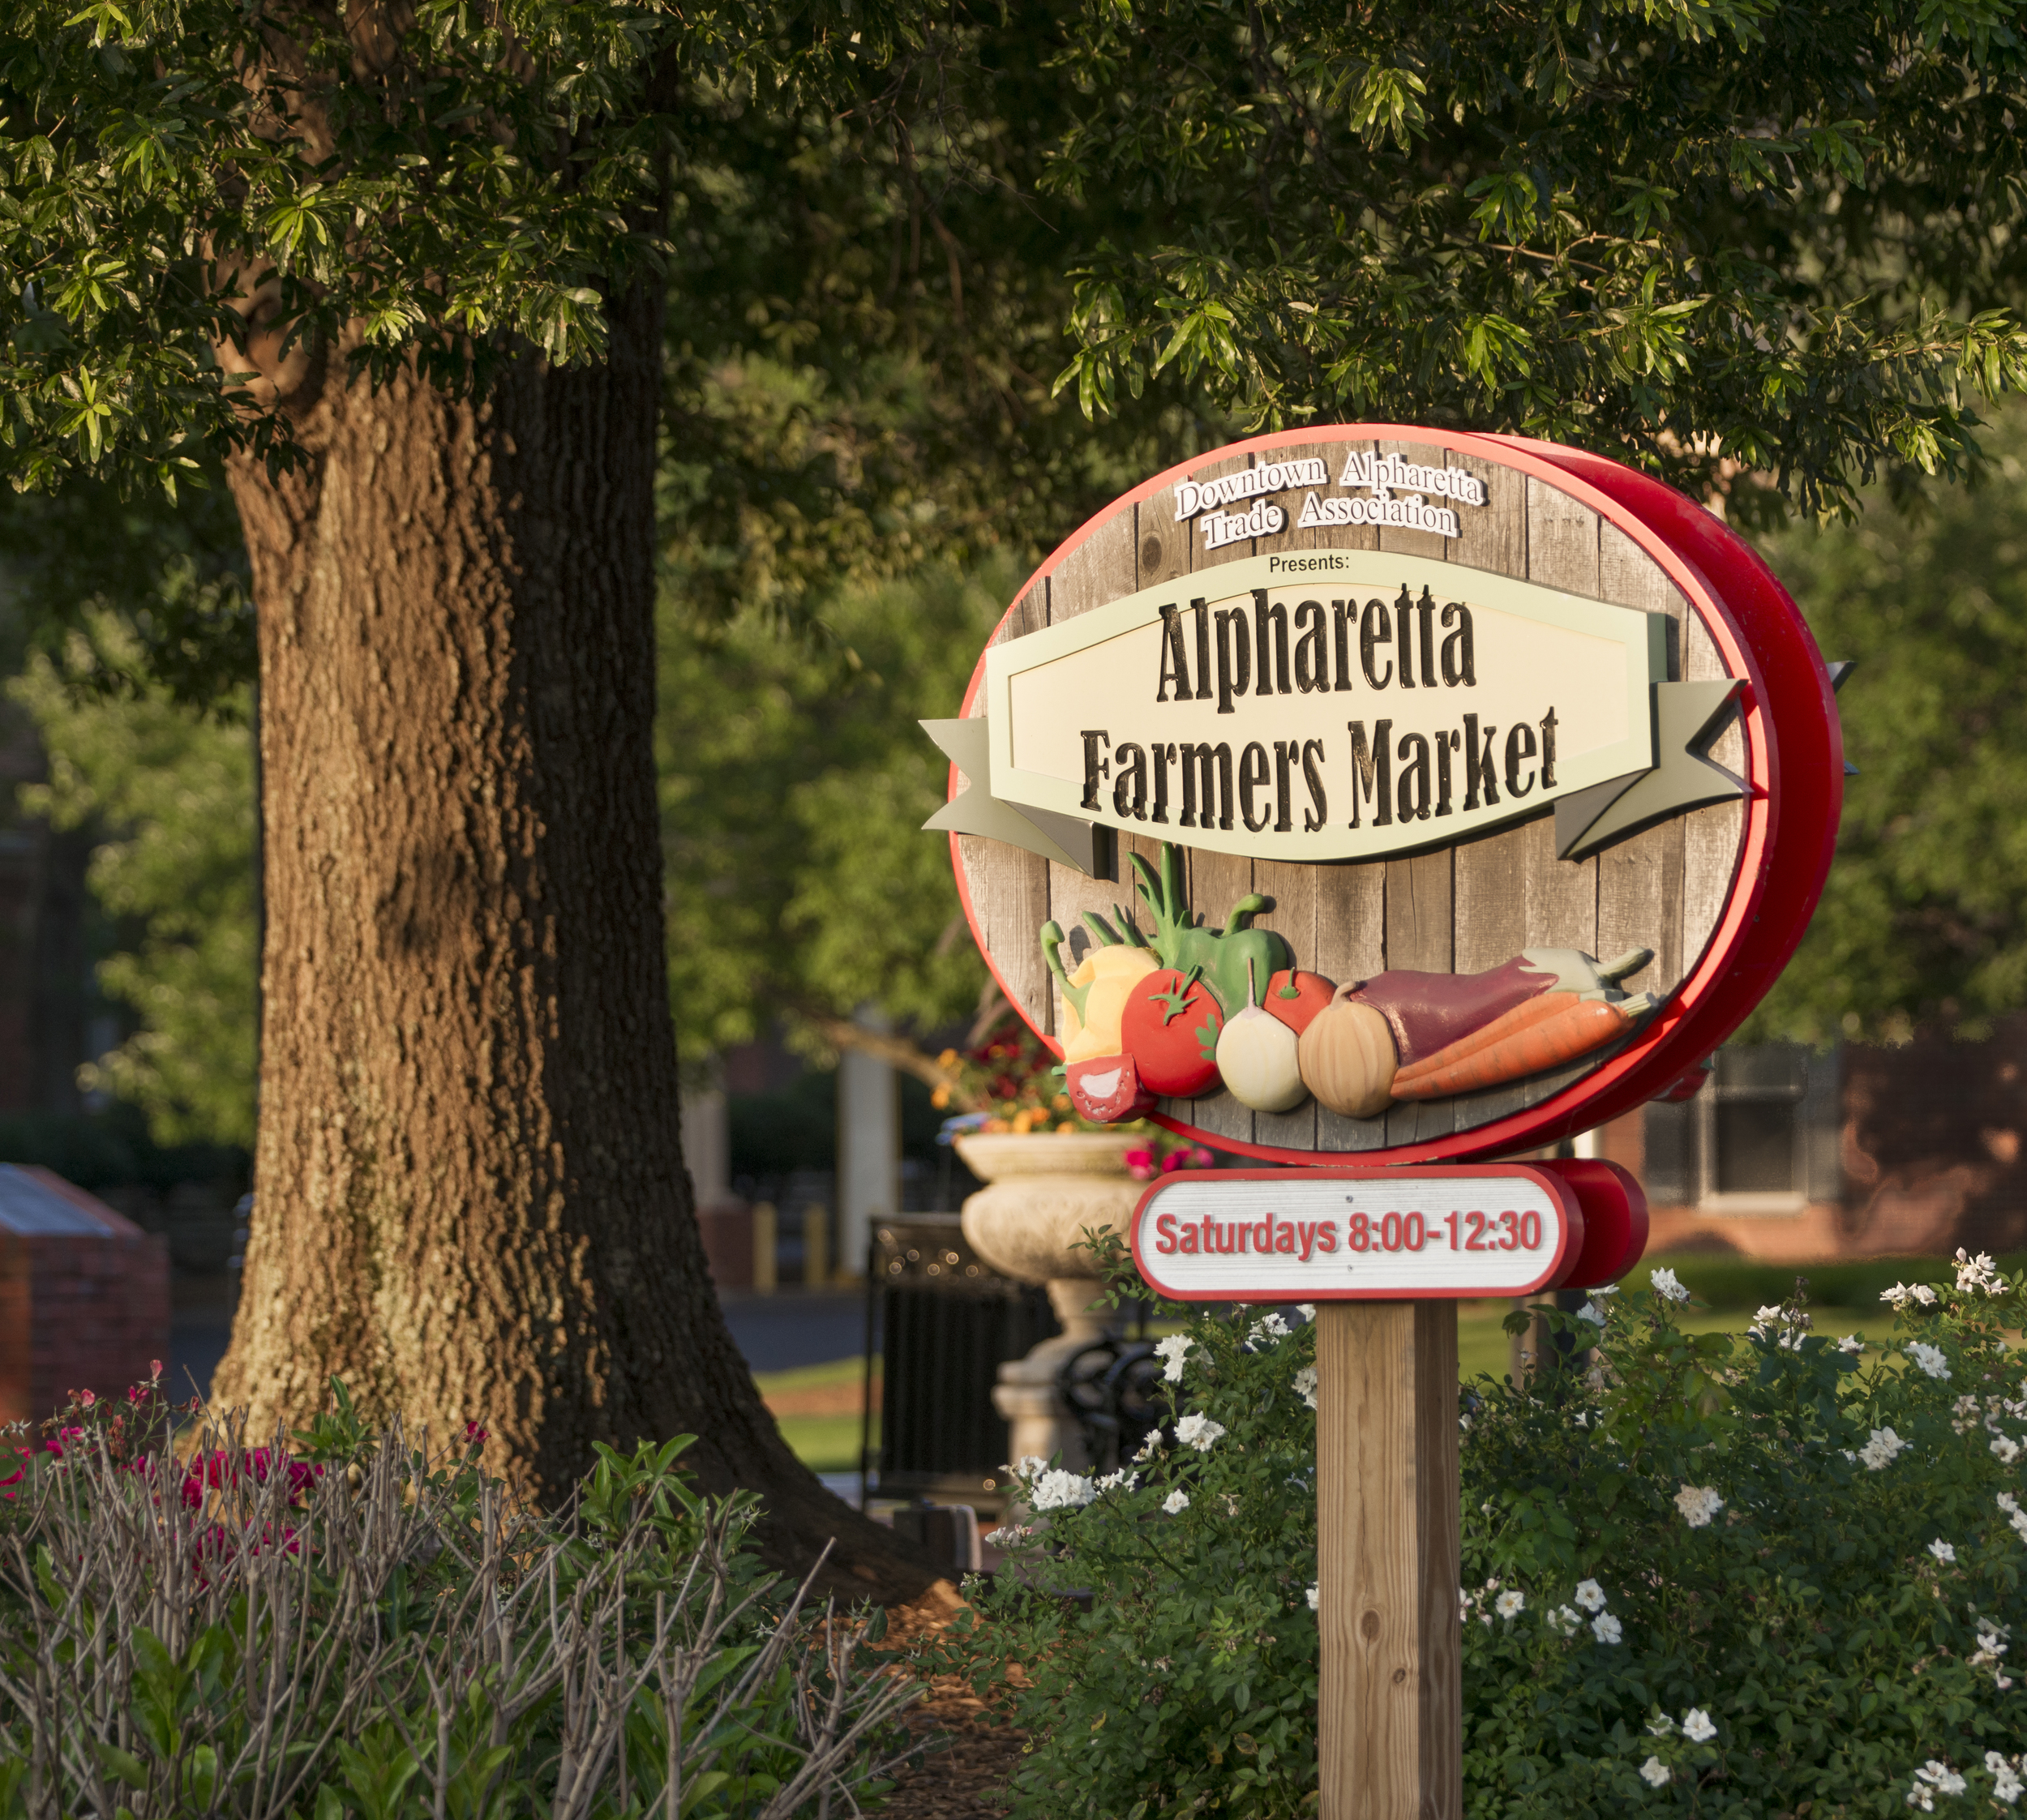 Alpharetta is a lively town to be a part of and it provides many engaging events.